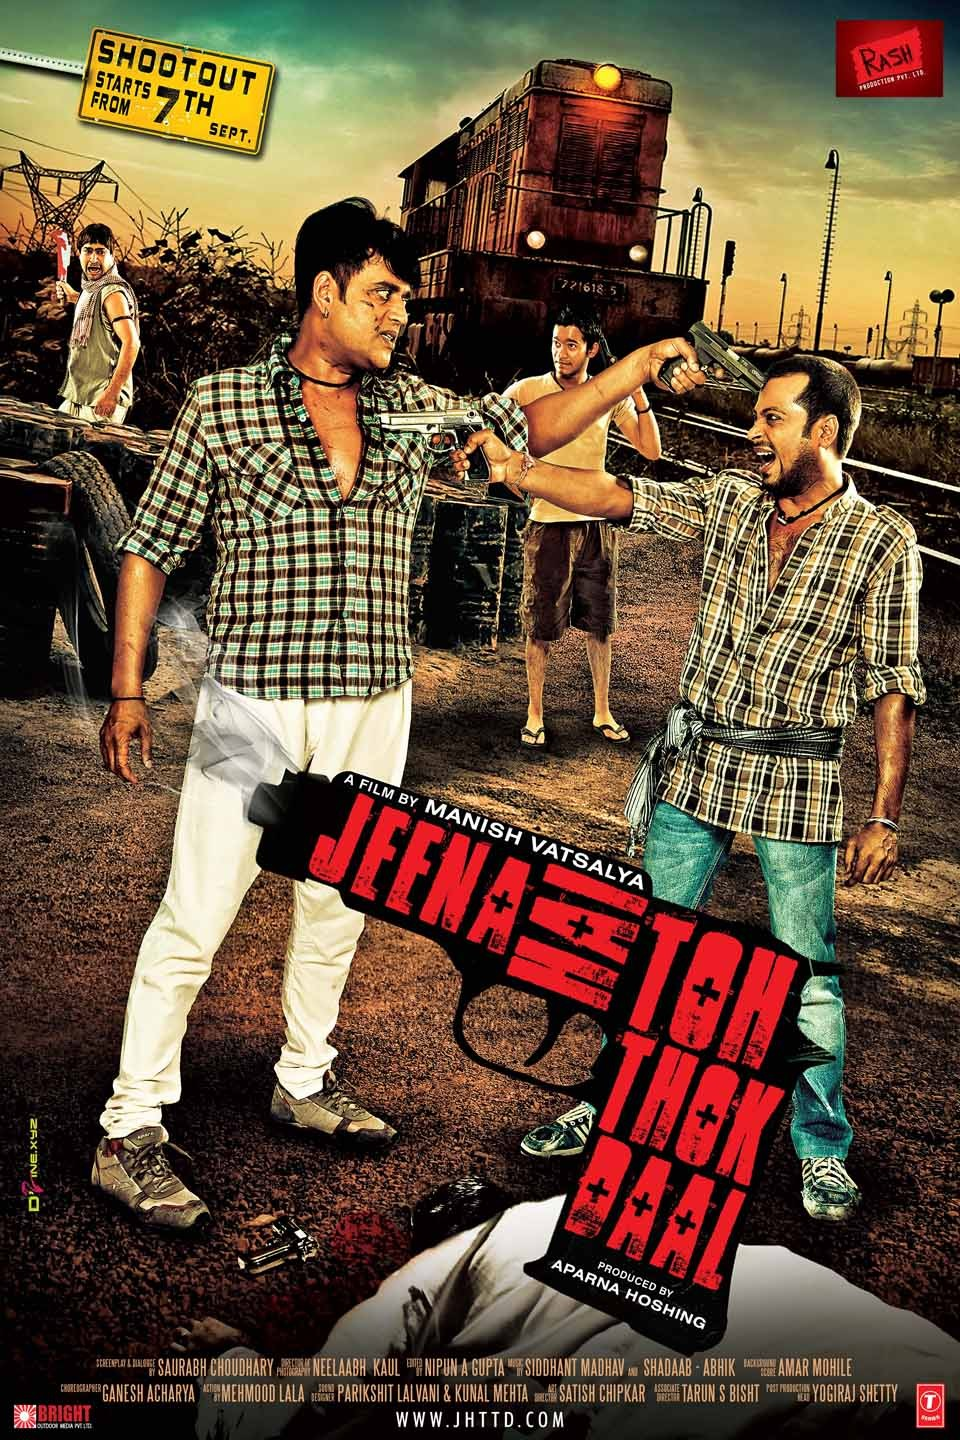 jeena hai toh thok daal full movie